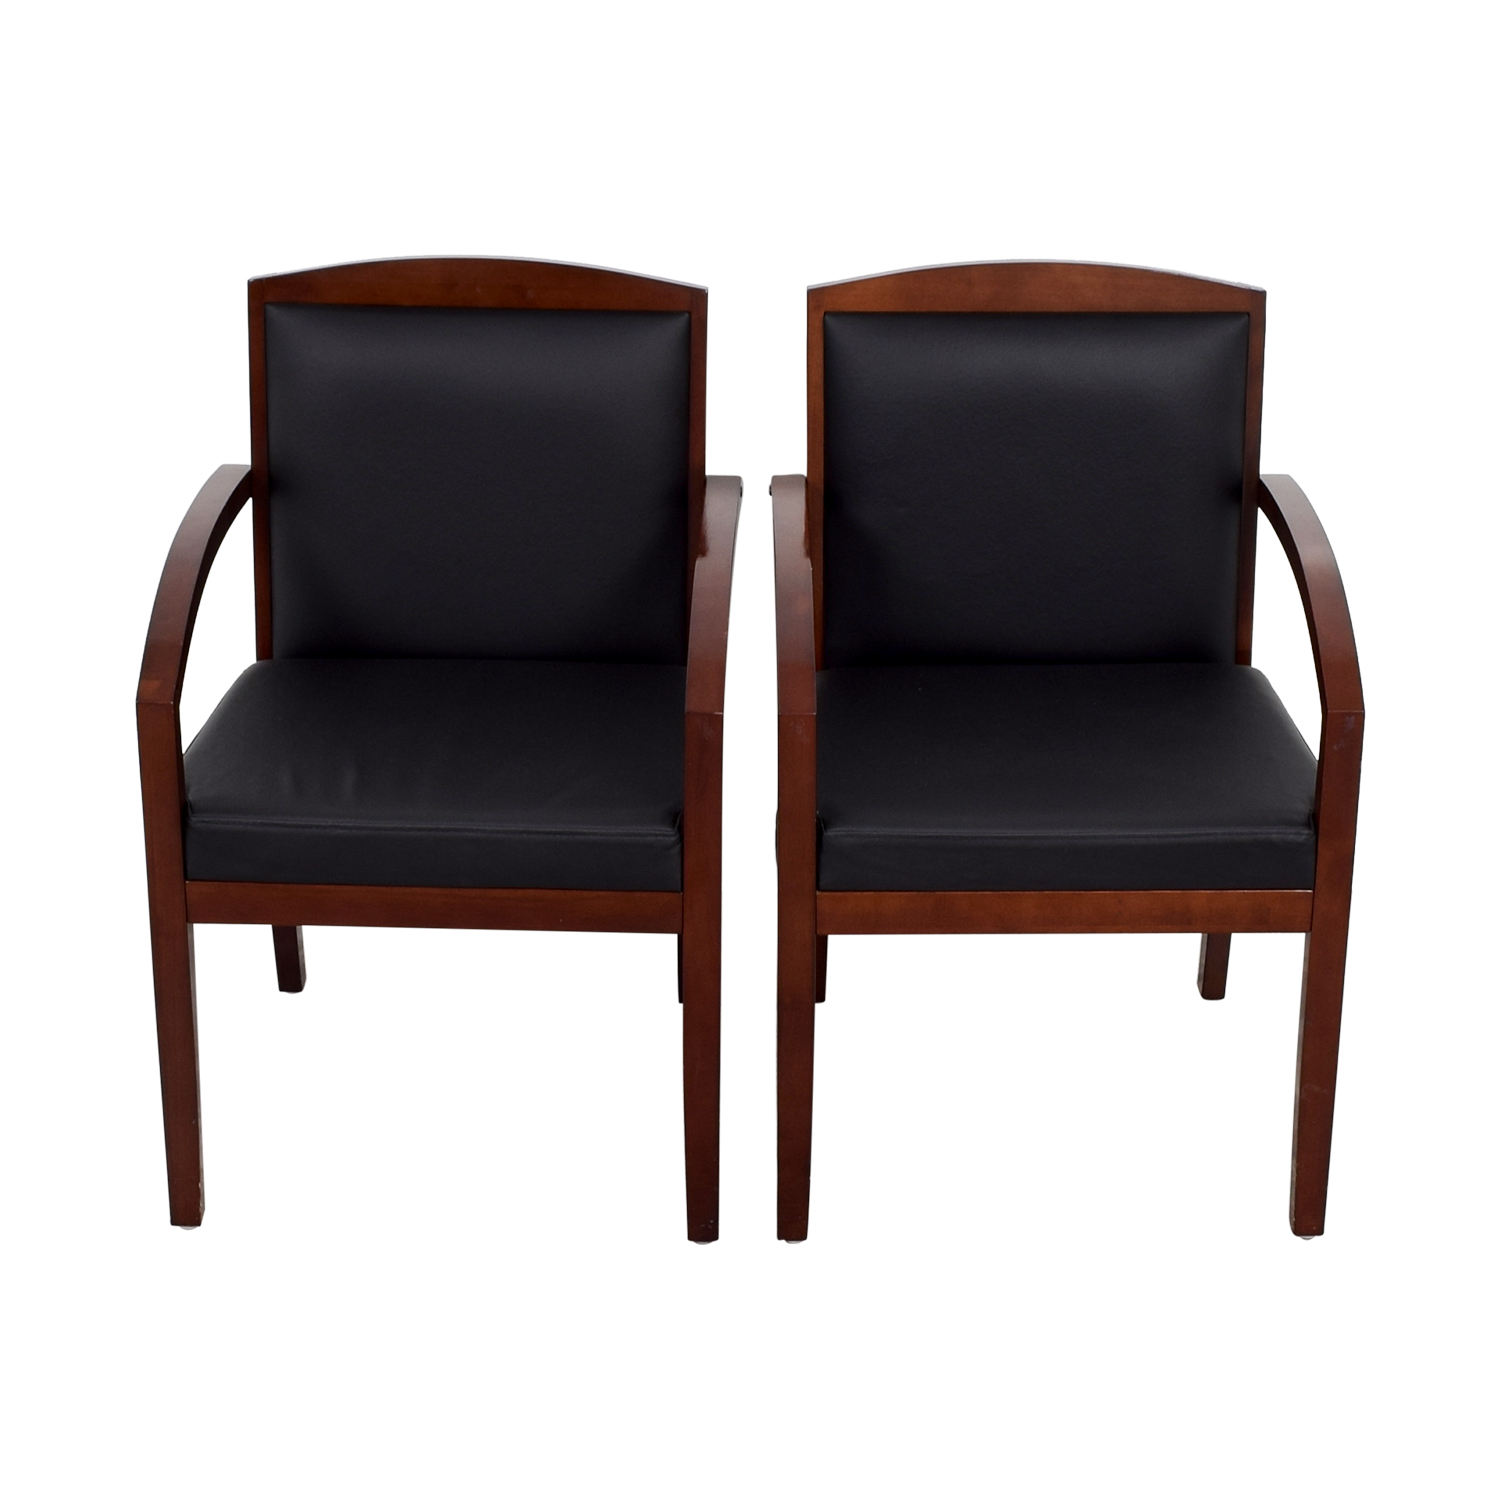 86 Off Black Leather And Wood Chairs Chairs